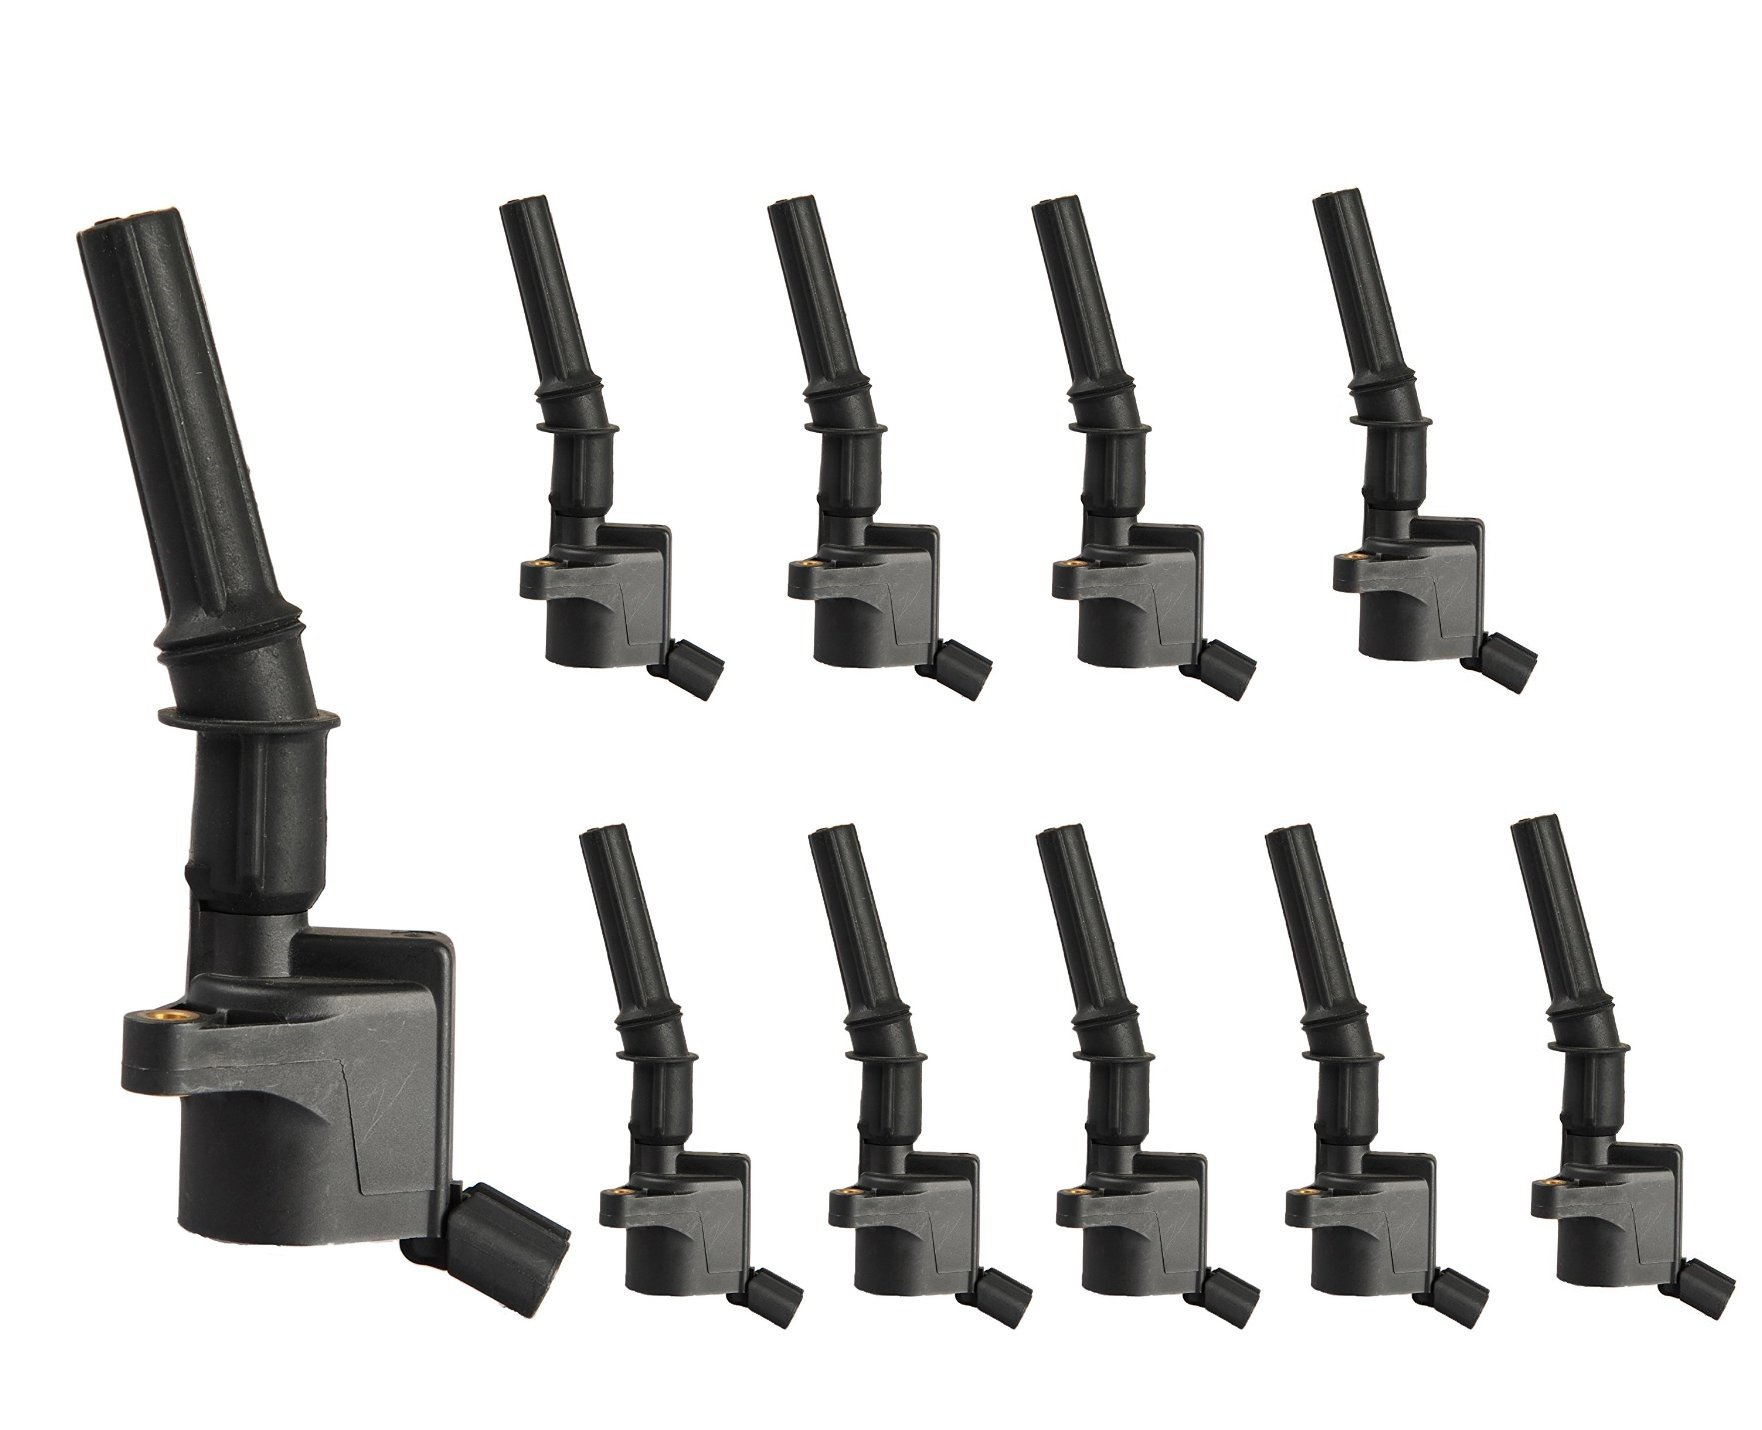 Complete Pack of 10 Ignition Coils for Ford Super Duty E-350 E-450 Excursion 6.8L V10 fit 3W7Z12029AA 3W7Z-12029-AA 1L2Z-12029-AA